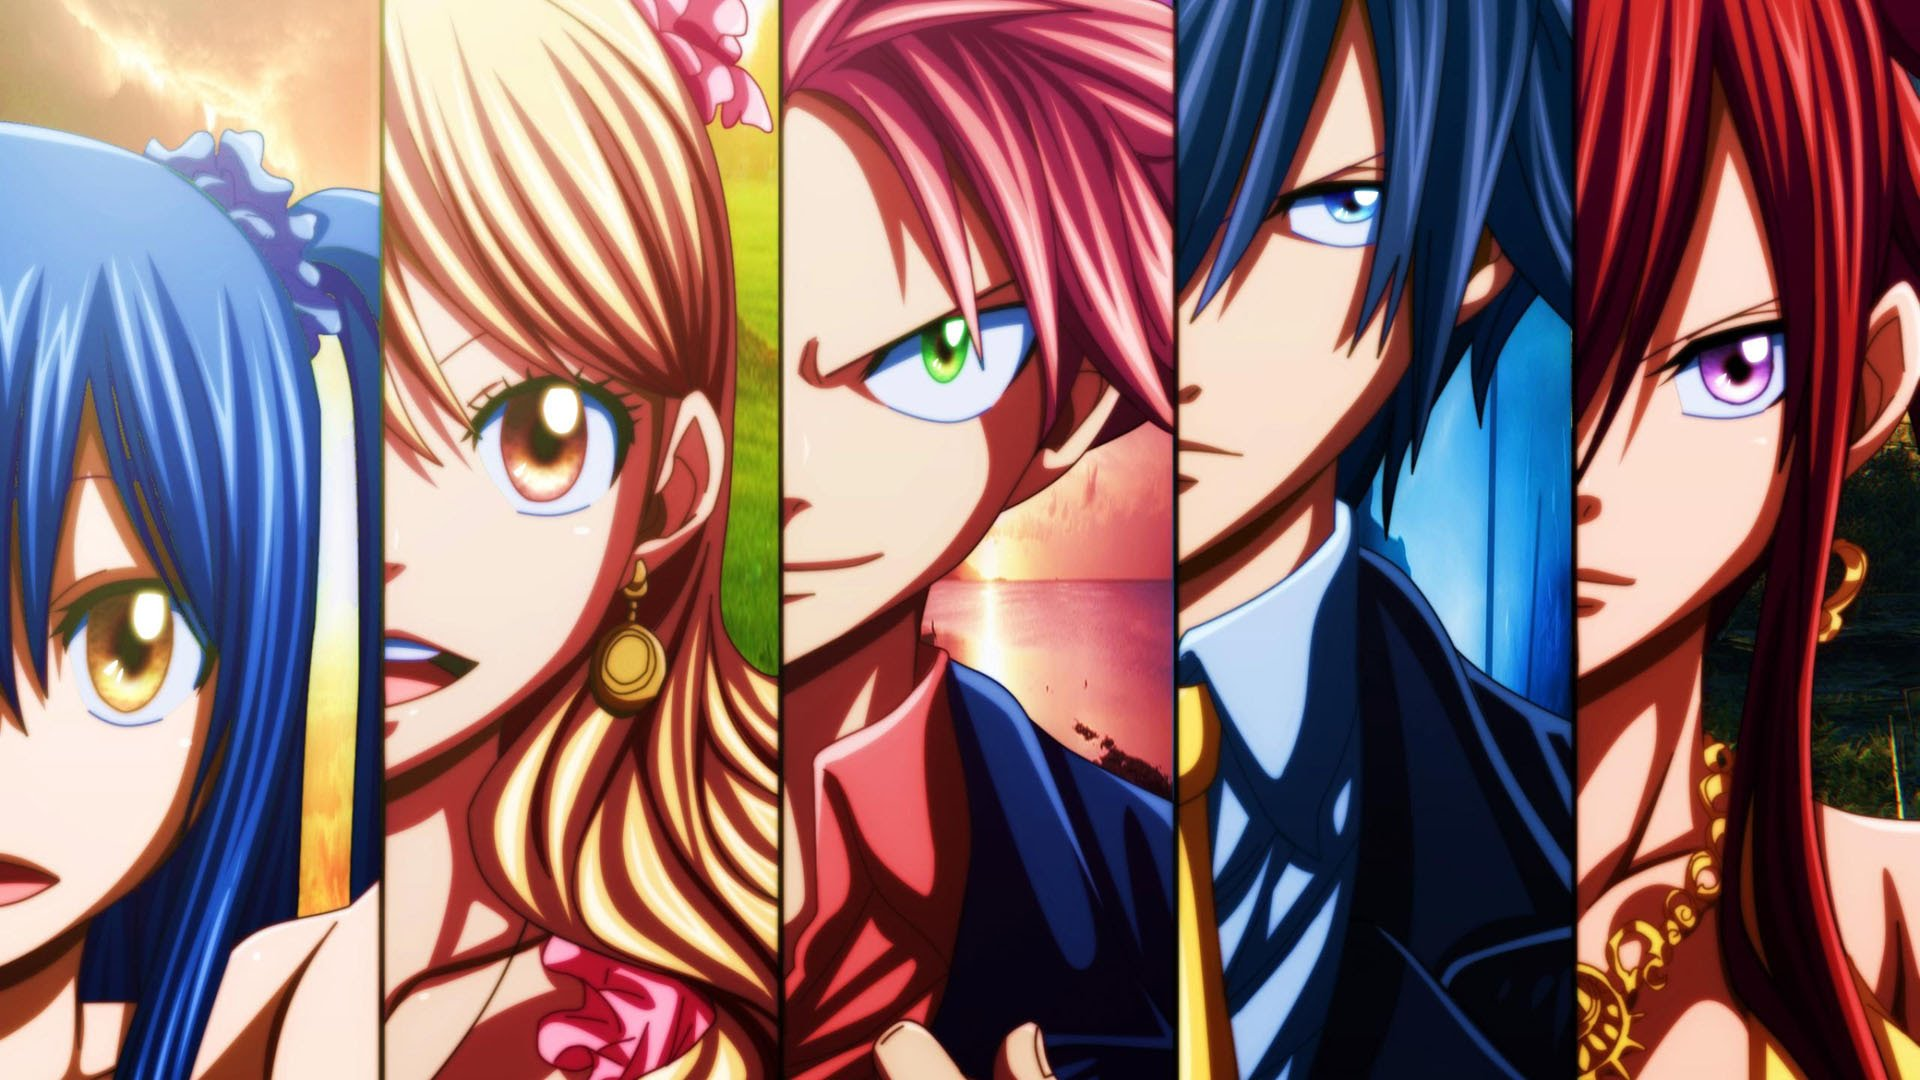 More Sky Group Cool Fairy Tail Wallpapers